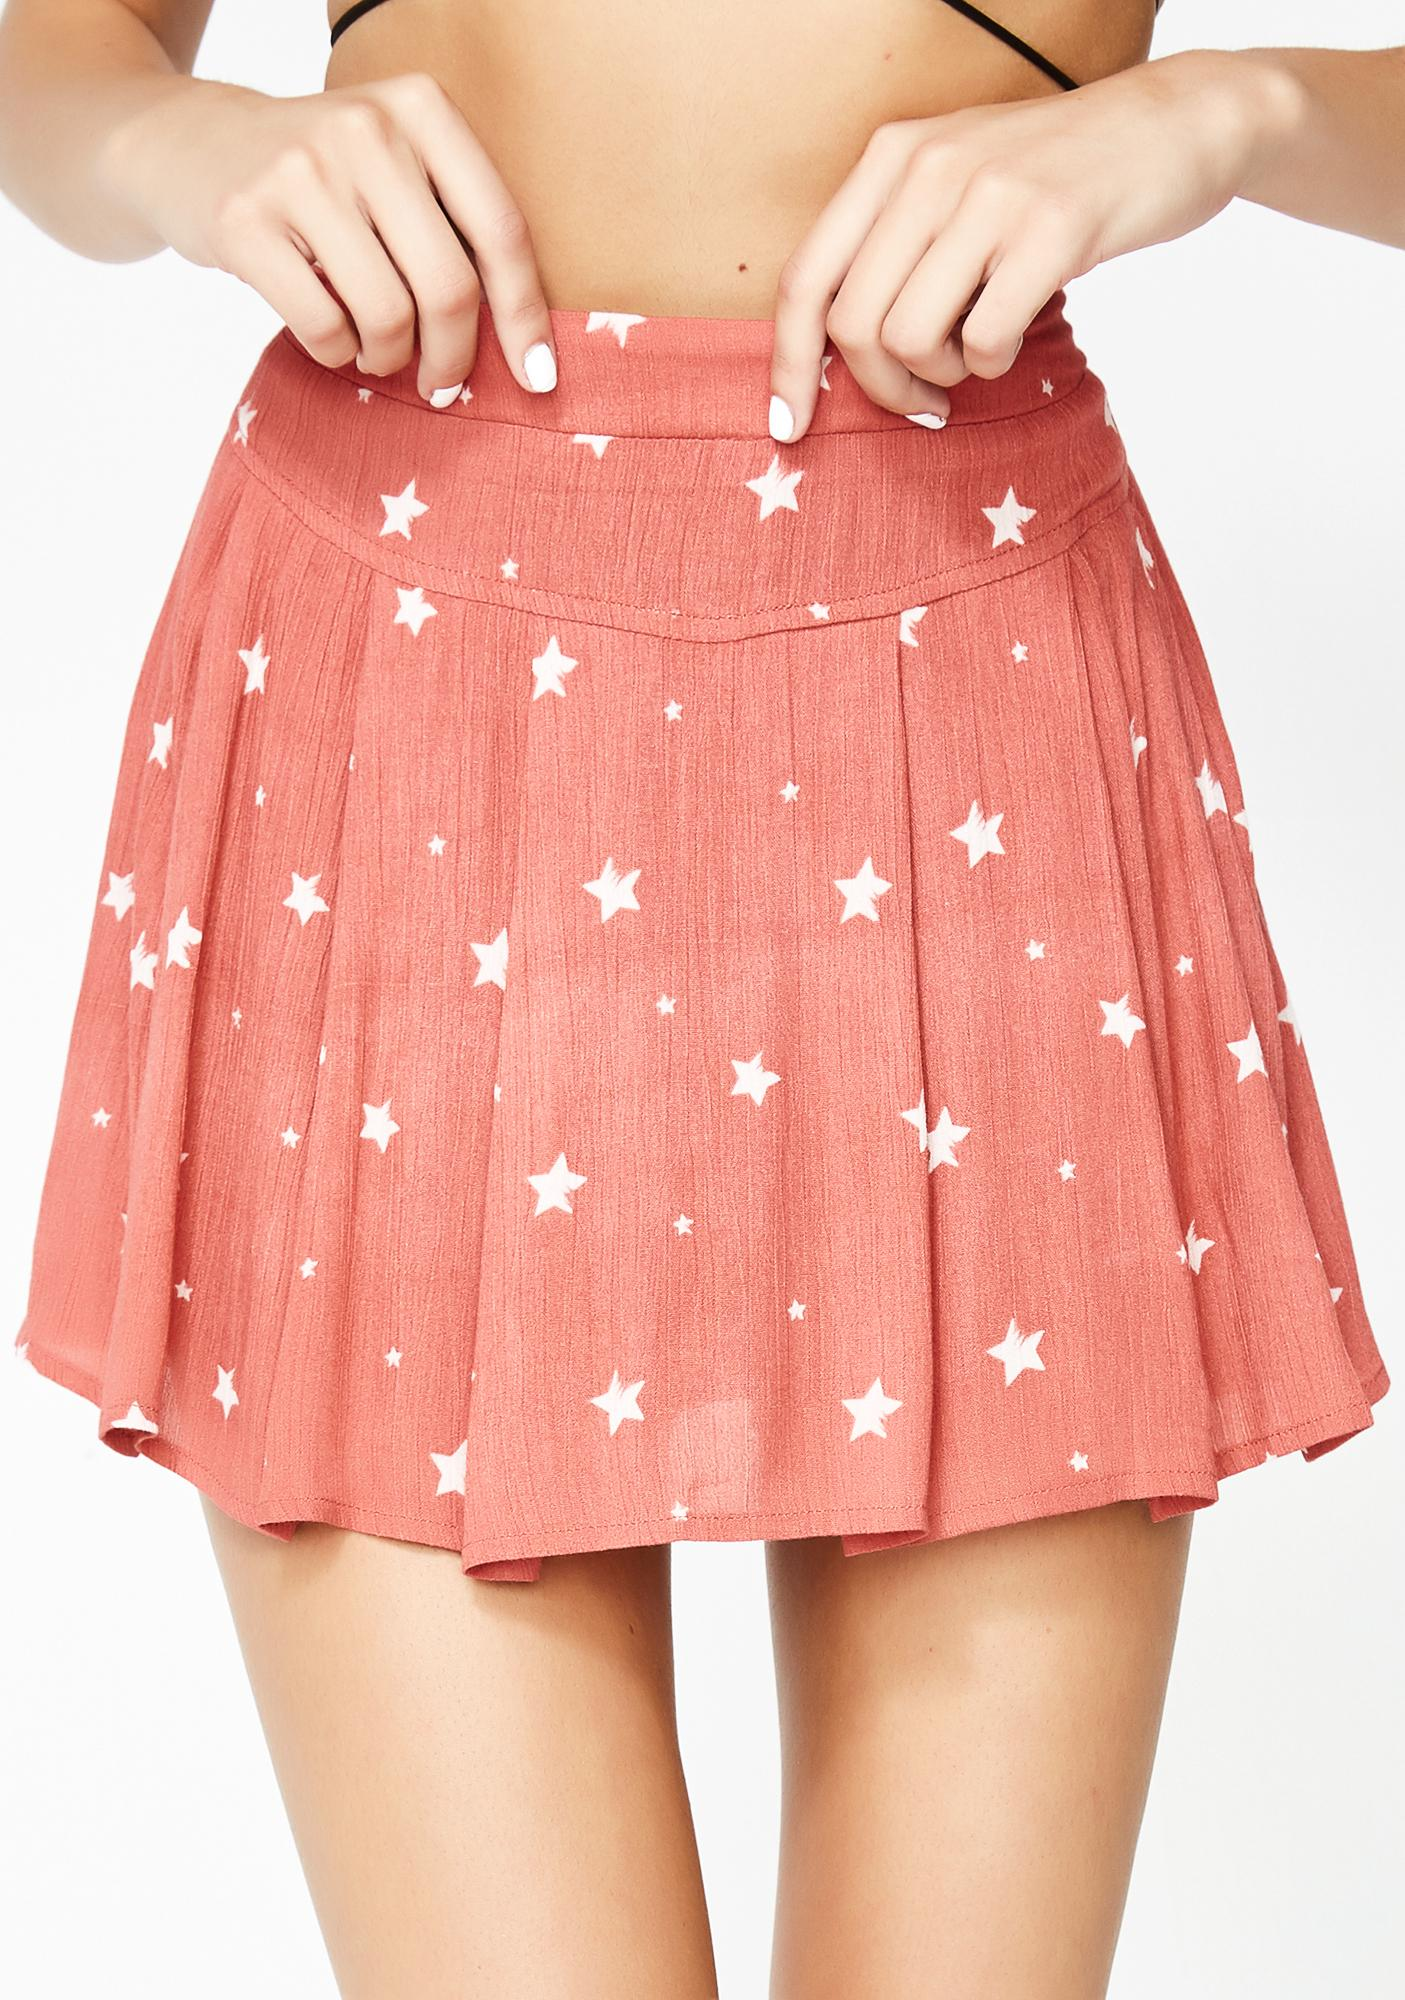 Shake Somethin' Star Skort by Sadie Sage